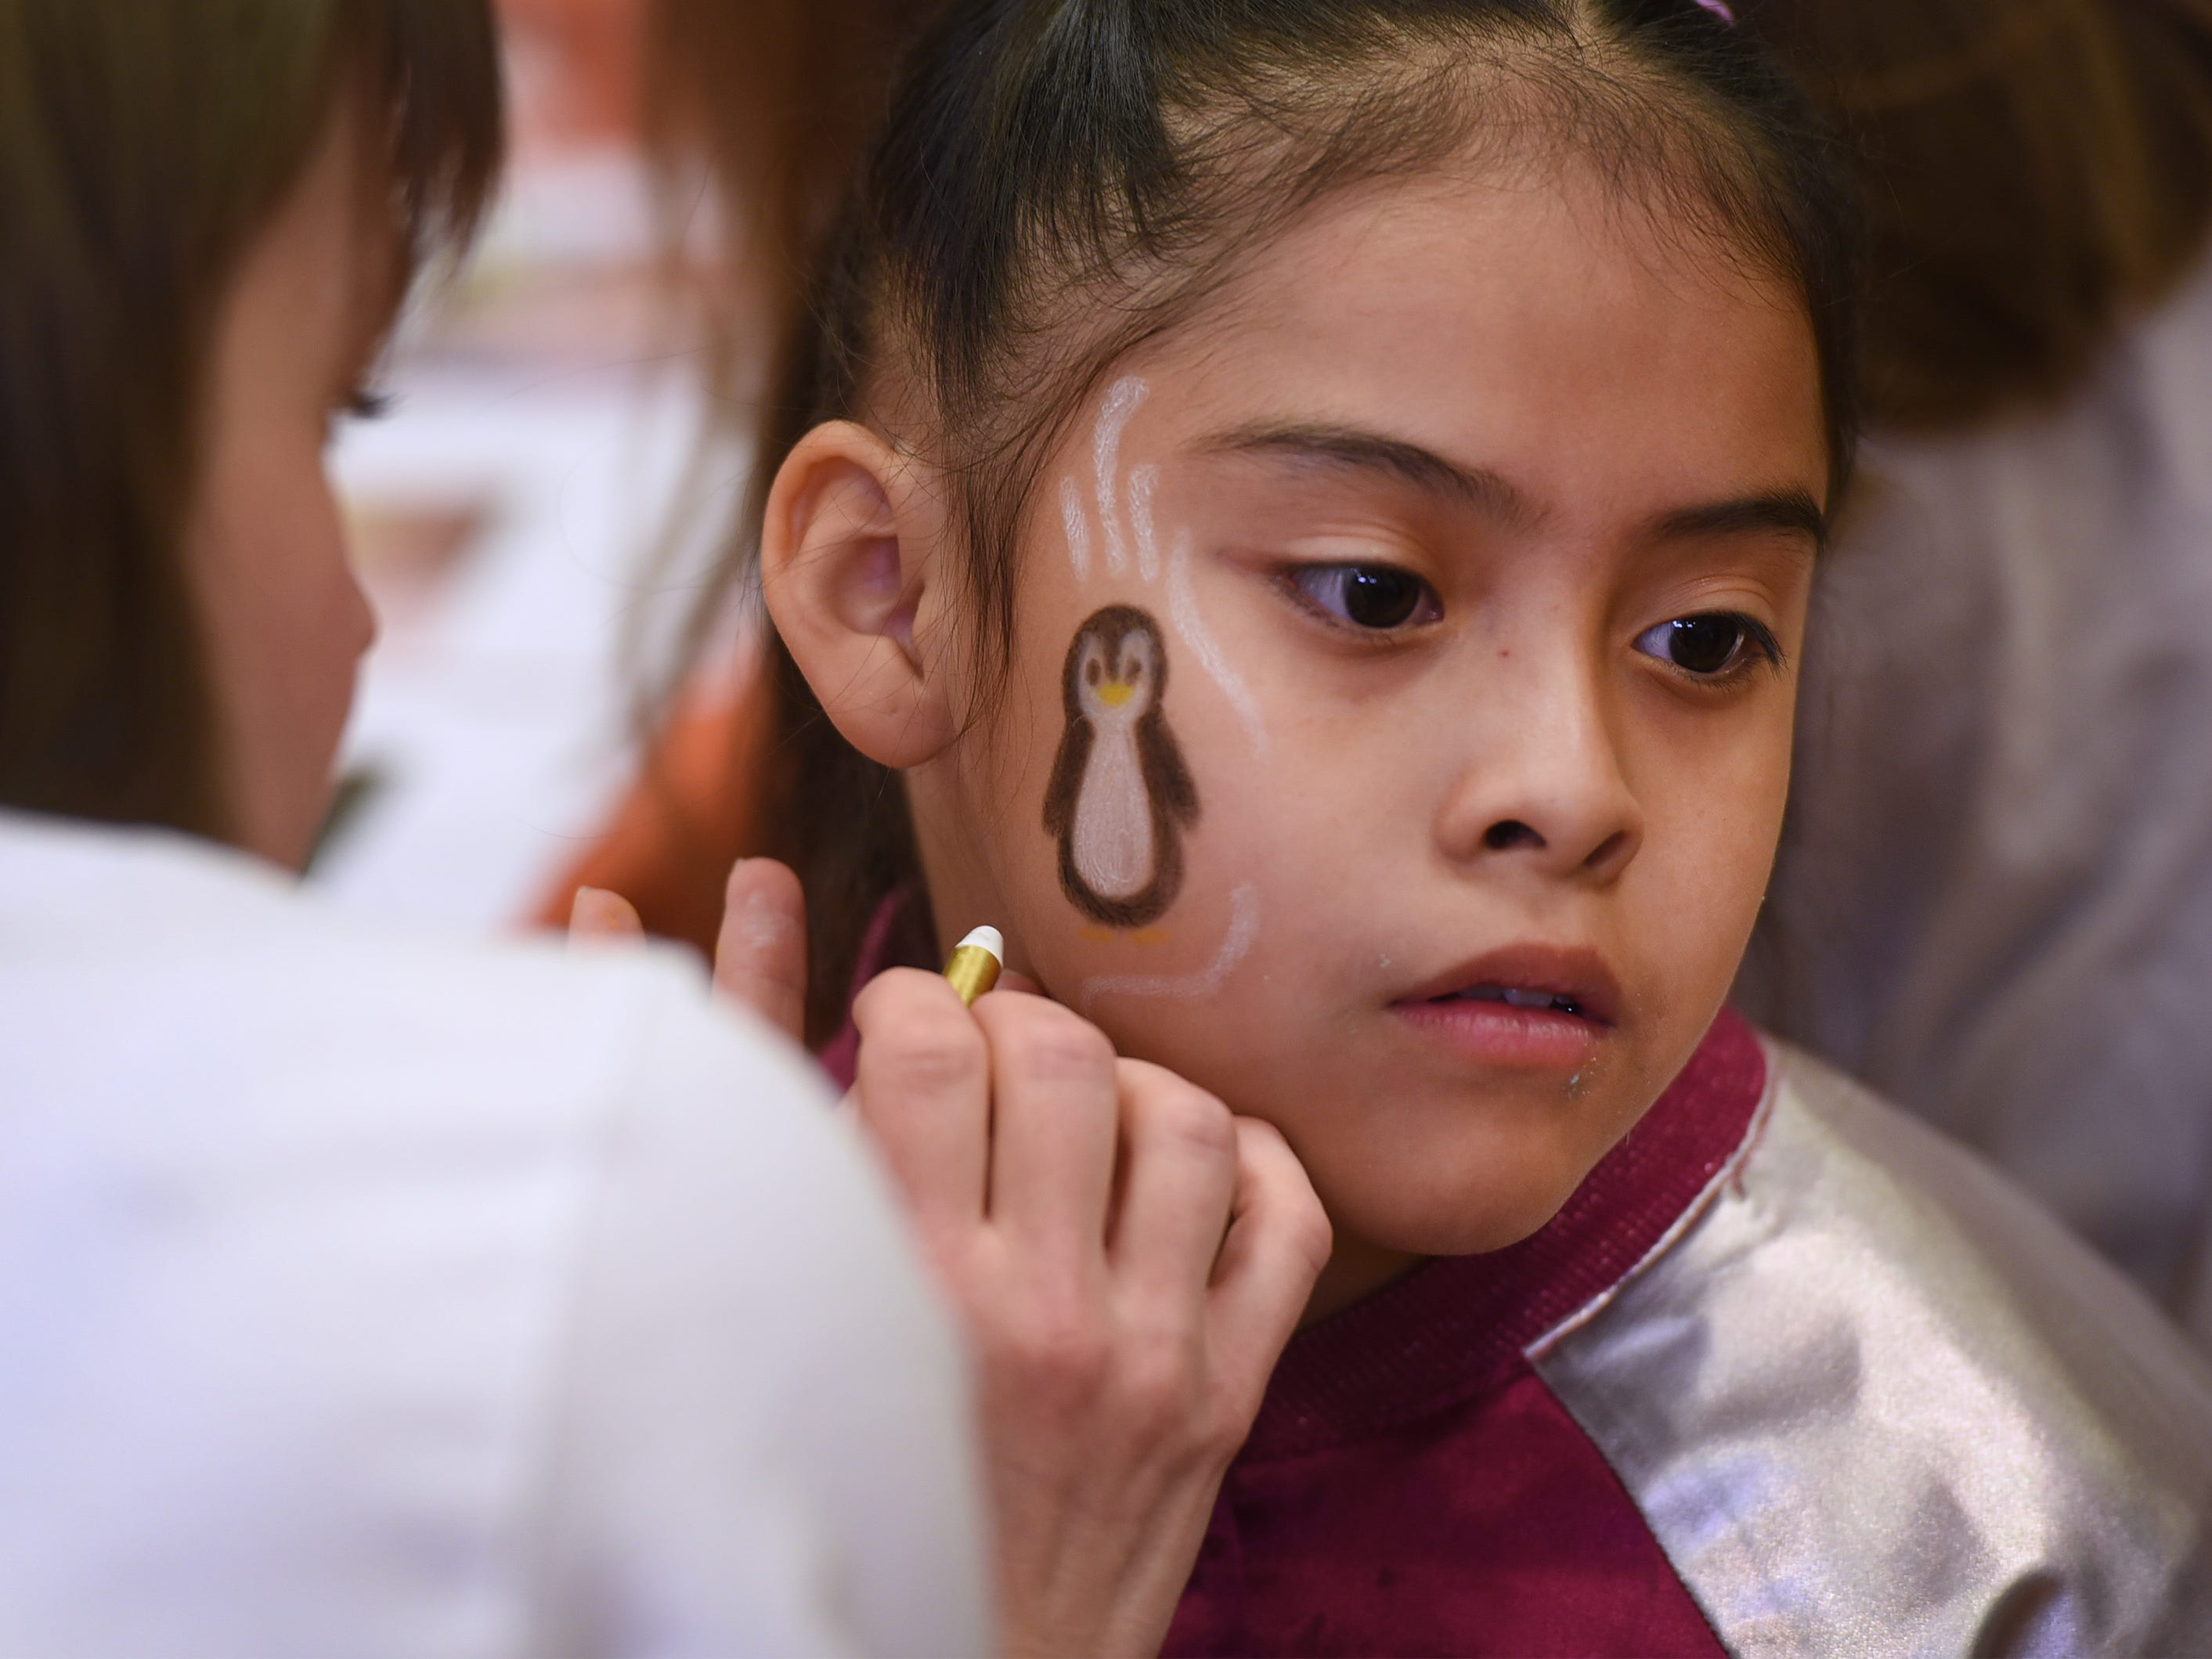 Naralie Marin (age 8) of Rutherford, has her face painted during the 3rd annual March Madness Food & Fun Day to benefit the Rutherford Food Pantry hosted by the Rutherford Education Association at Washington School in Rutherford on 03/23/2019.